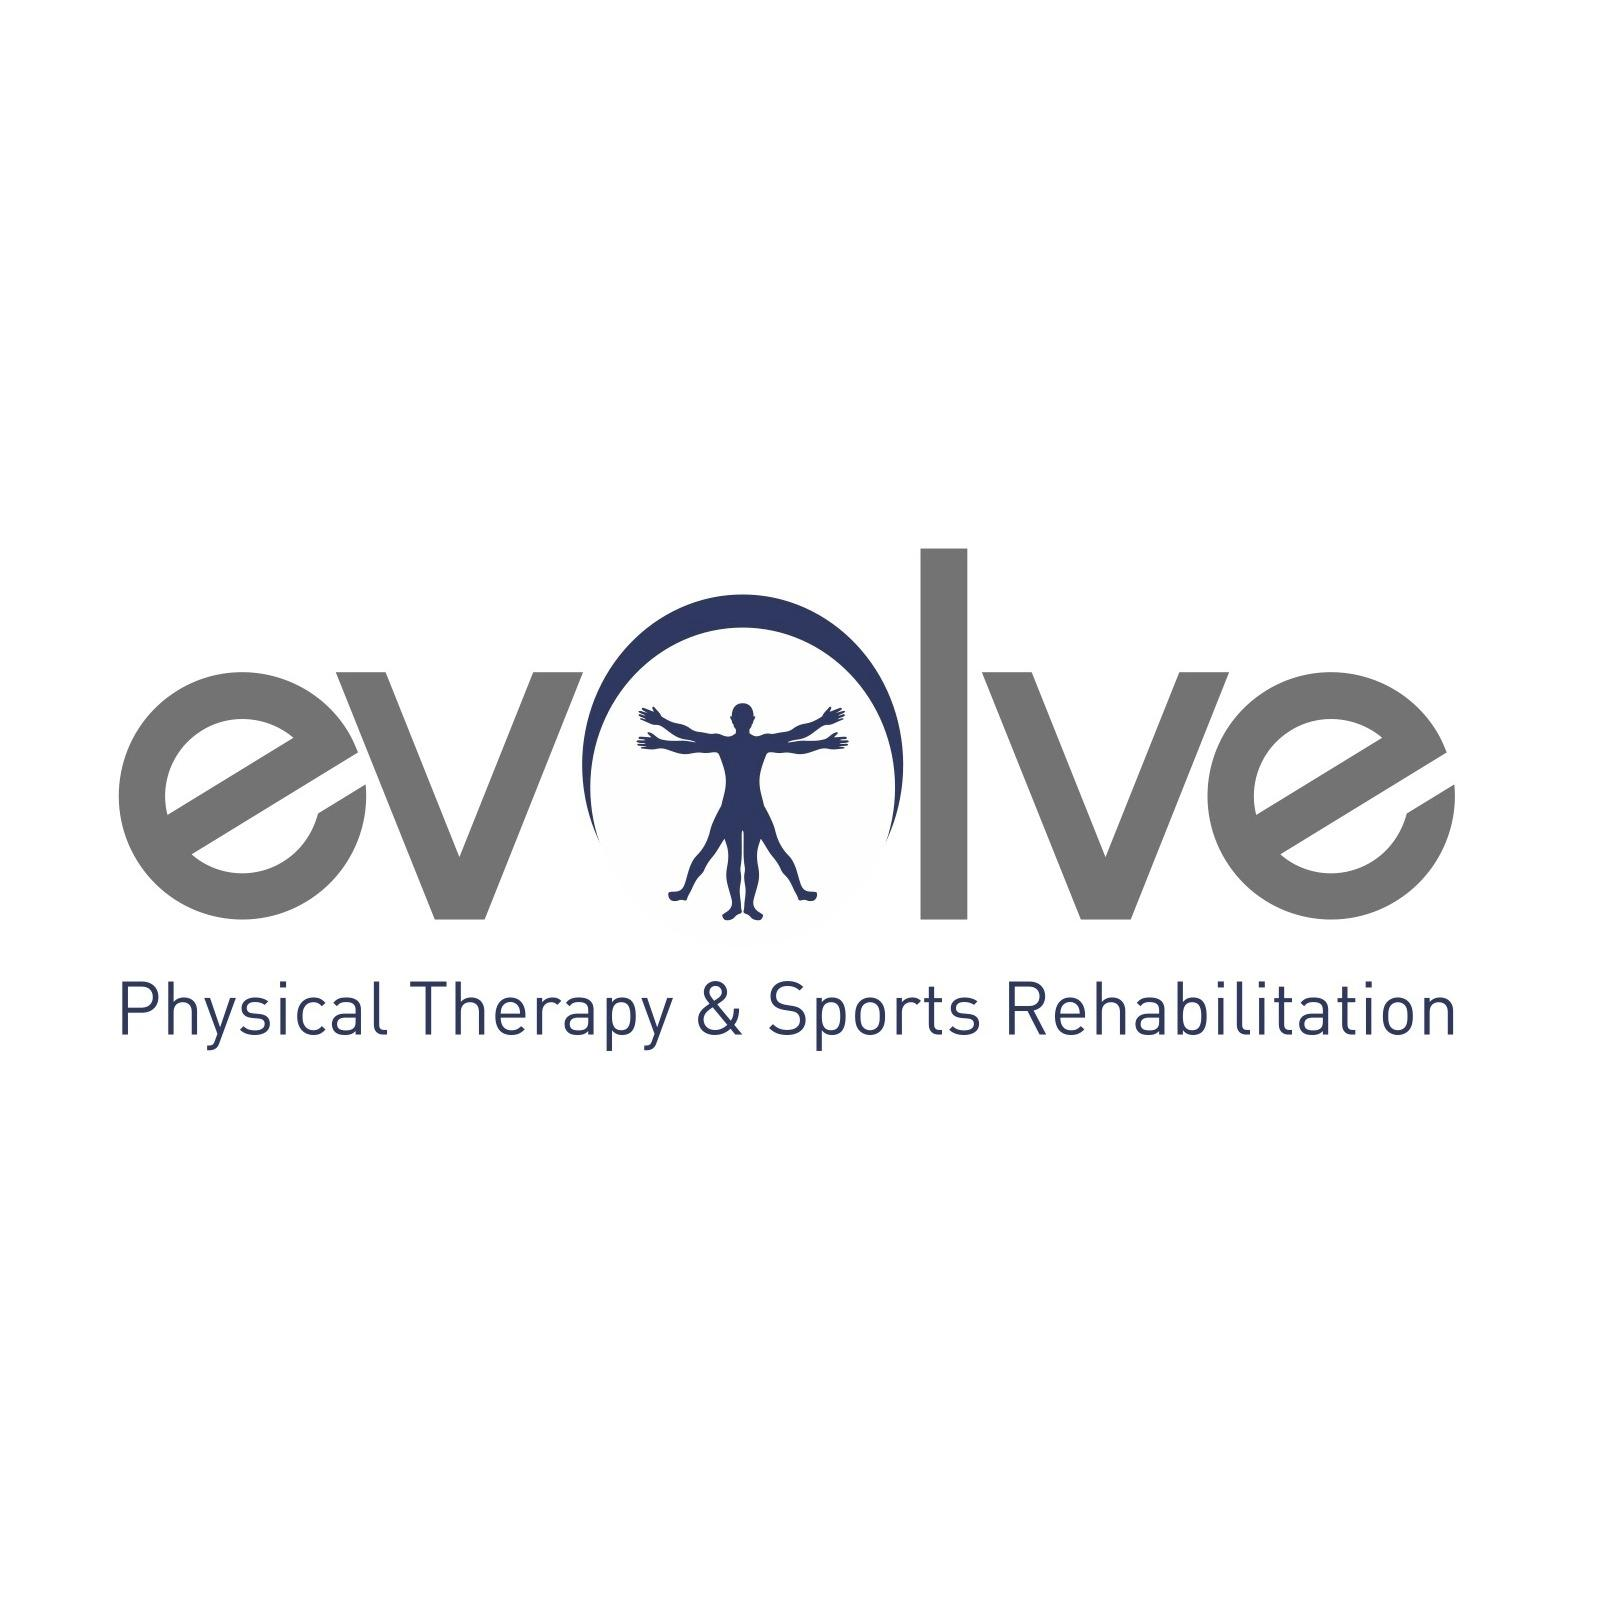 Evolve Physical Therapy & Sports Rehabilitation image 3